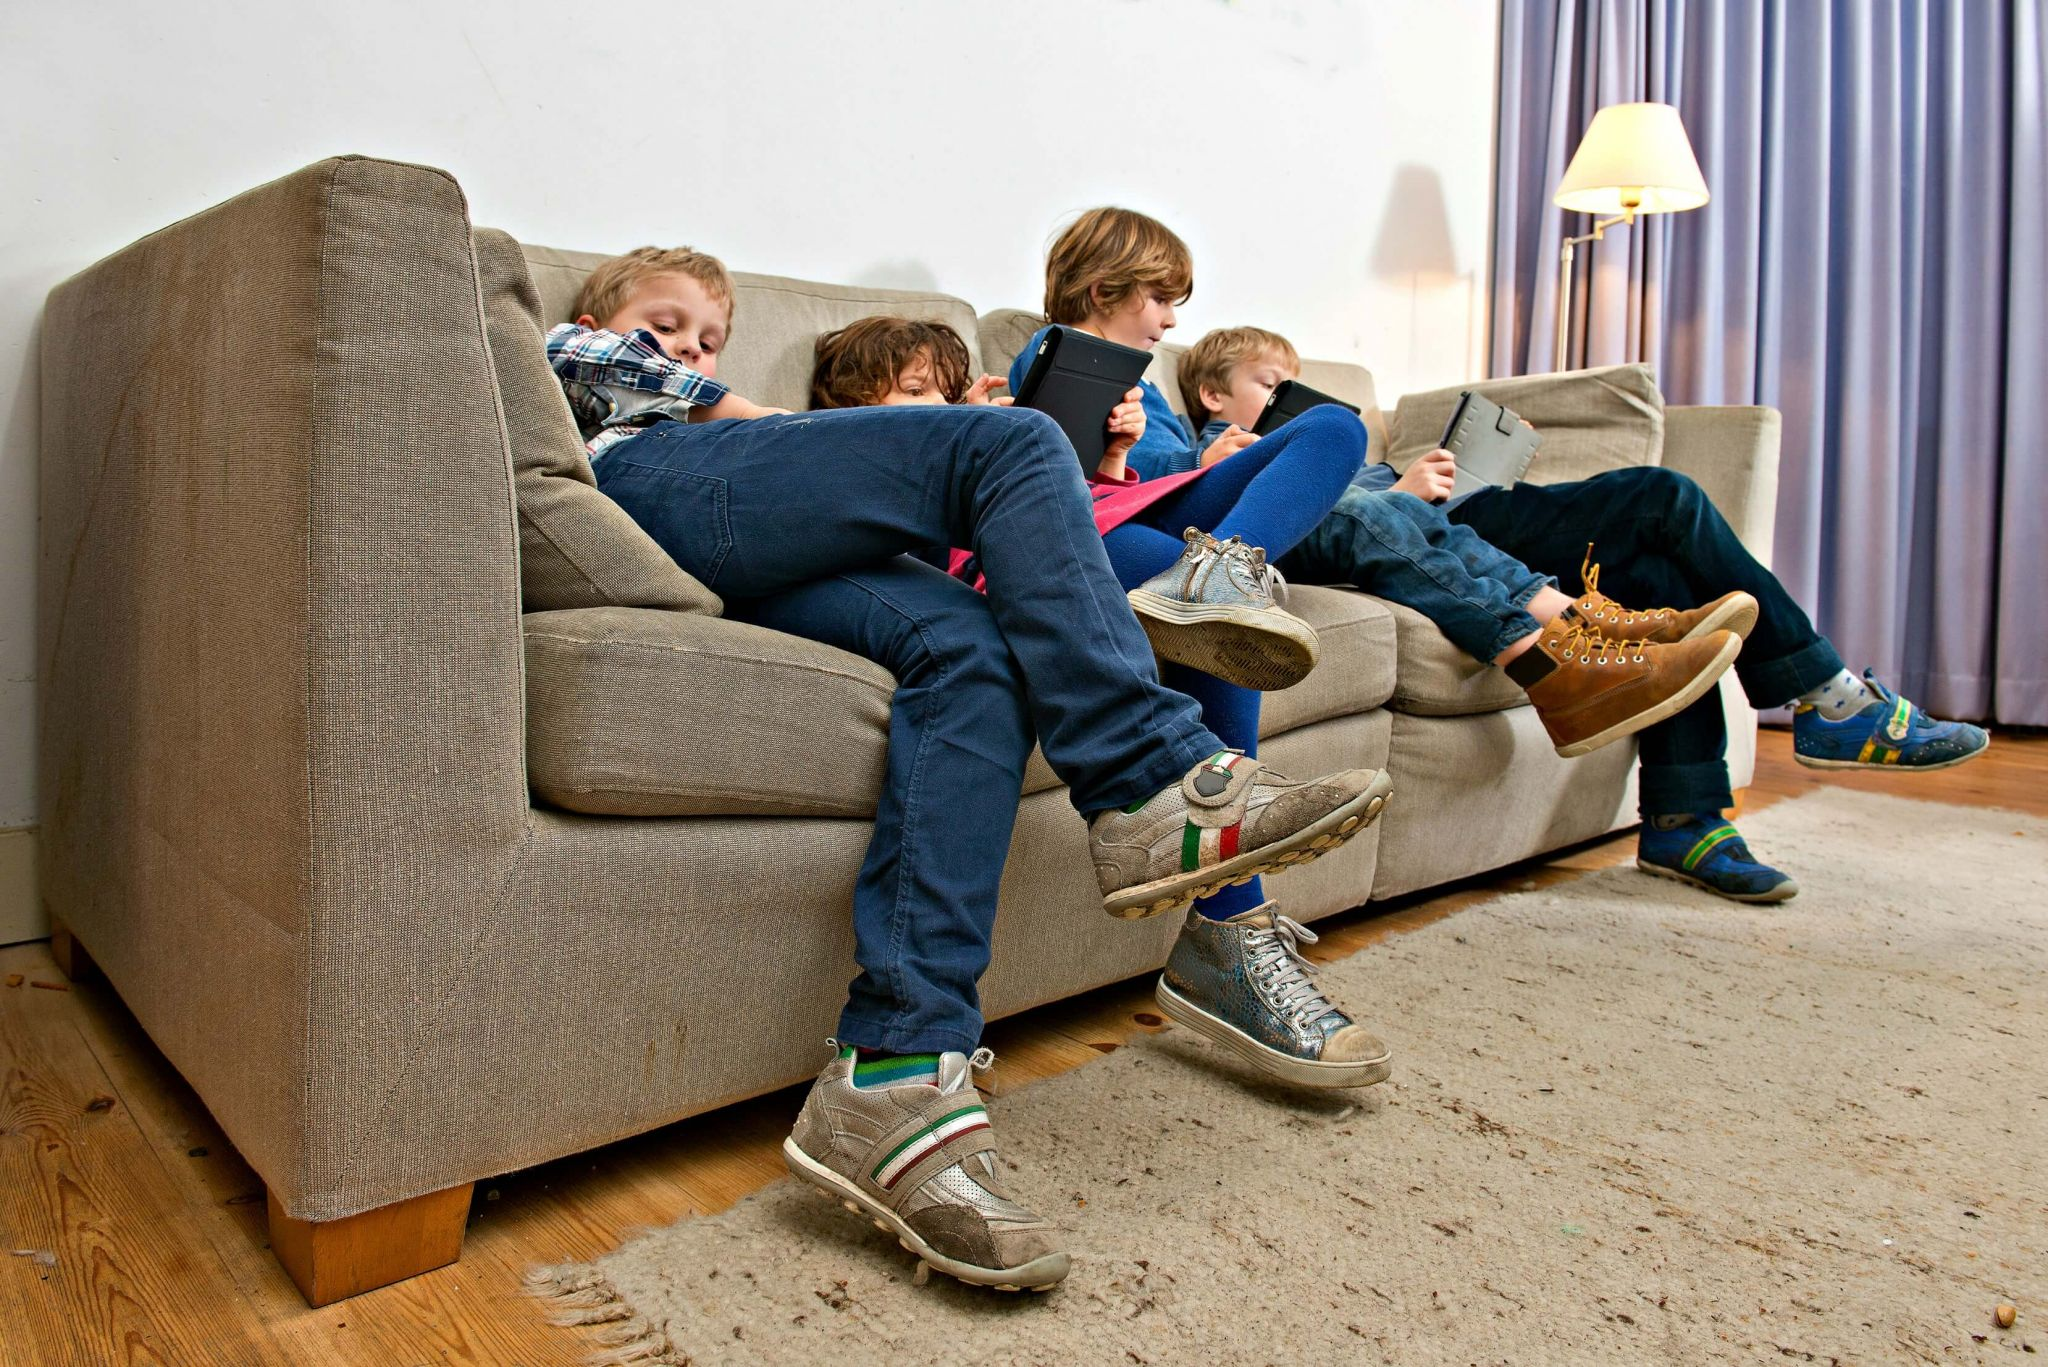 dangers of online gaming - four children slumped on a sofa playing with iPads